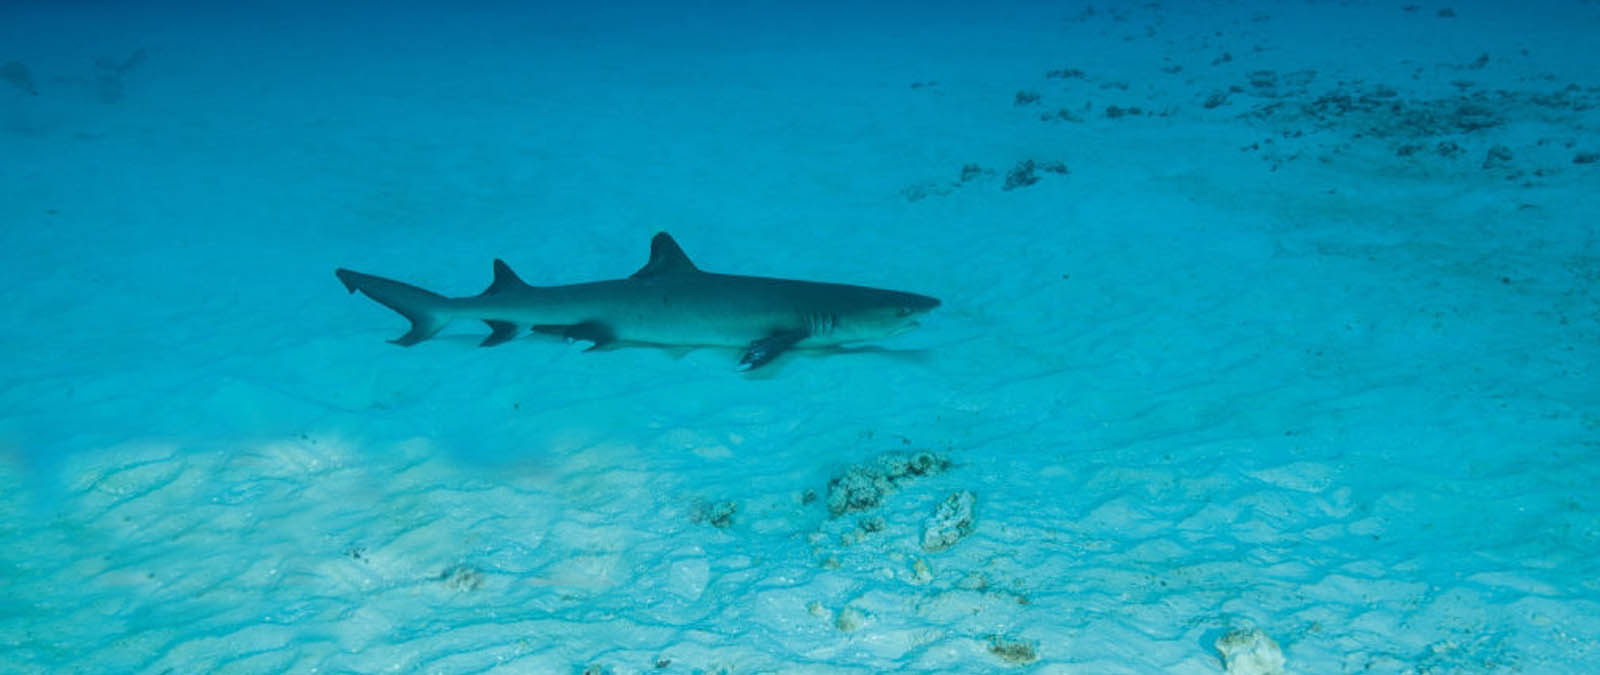 image reef shark